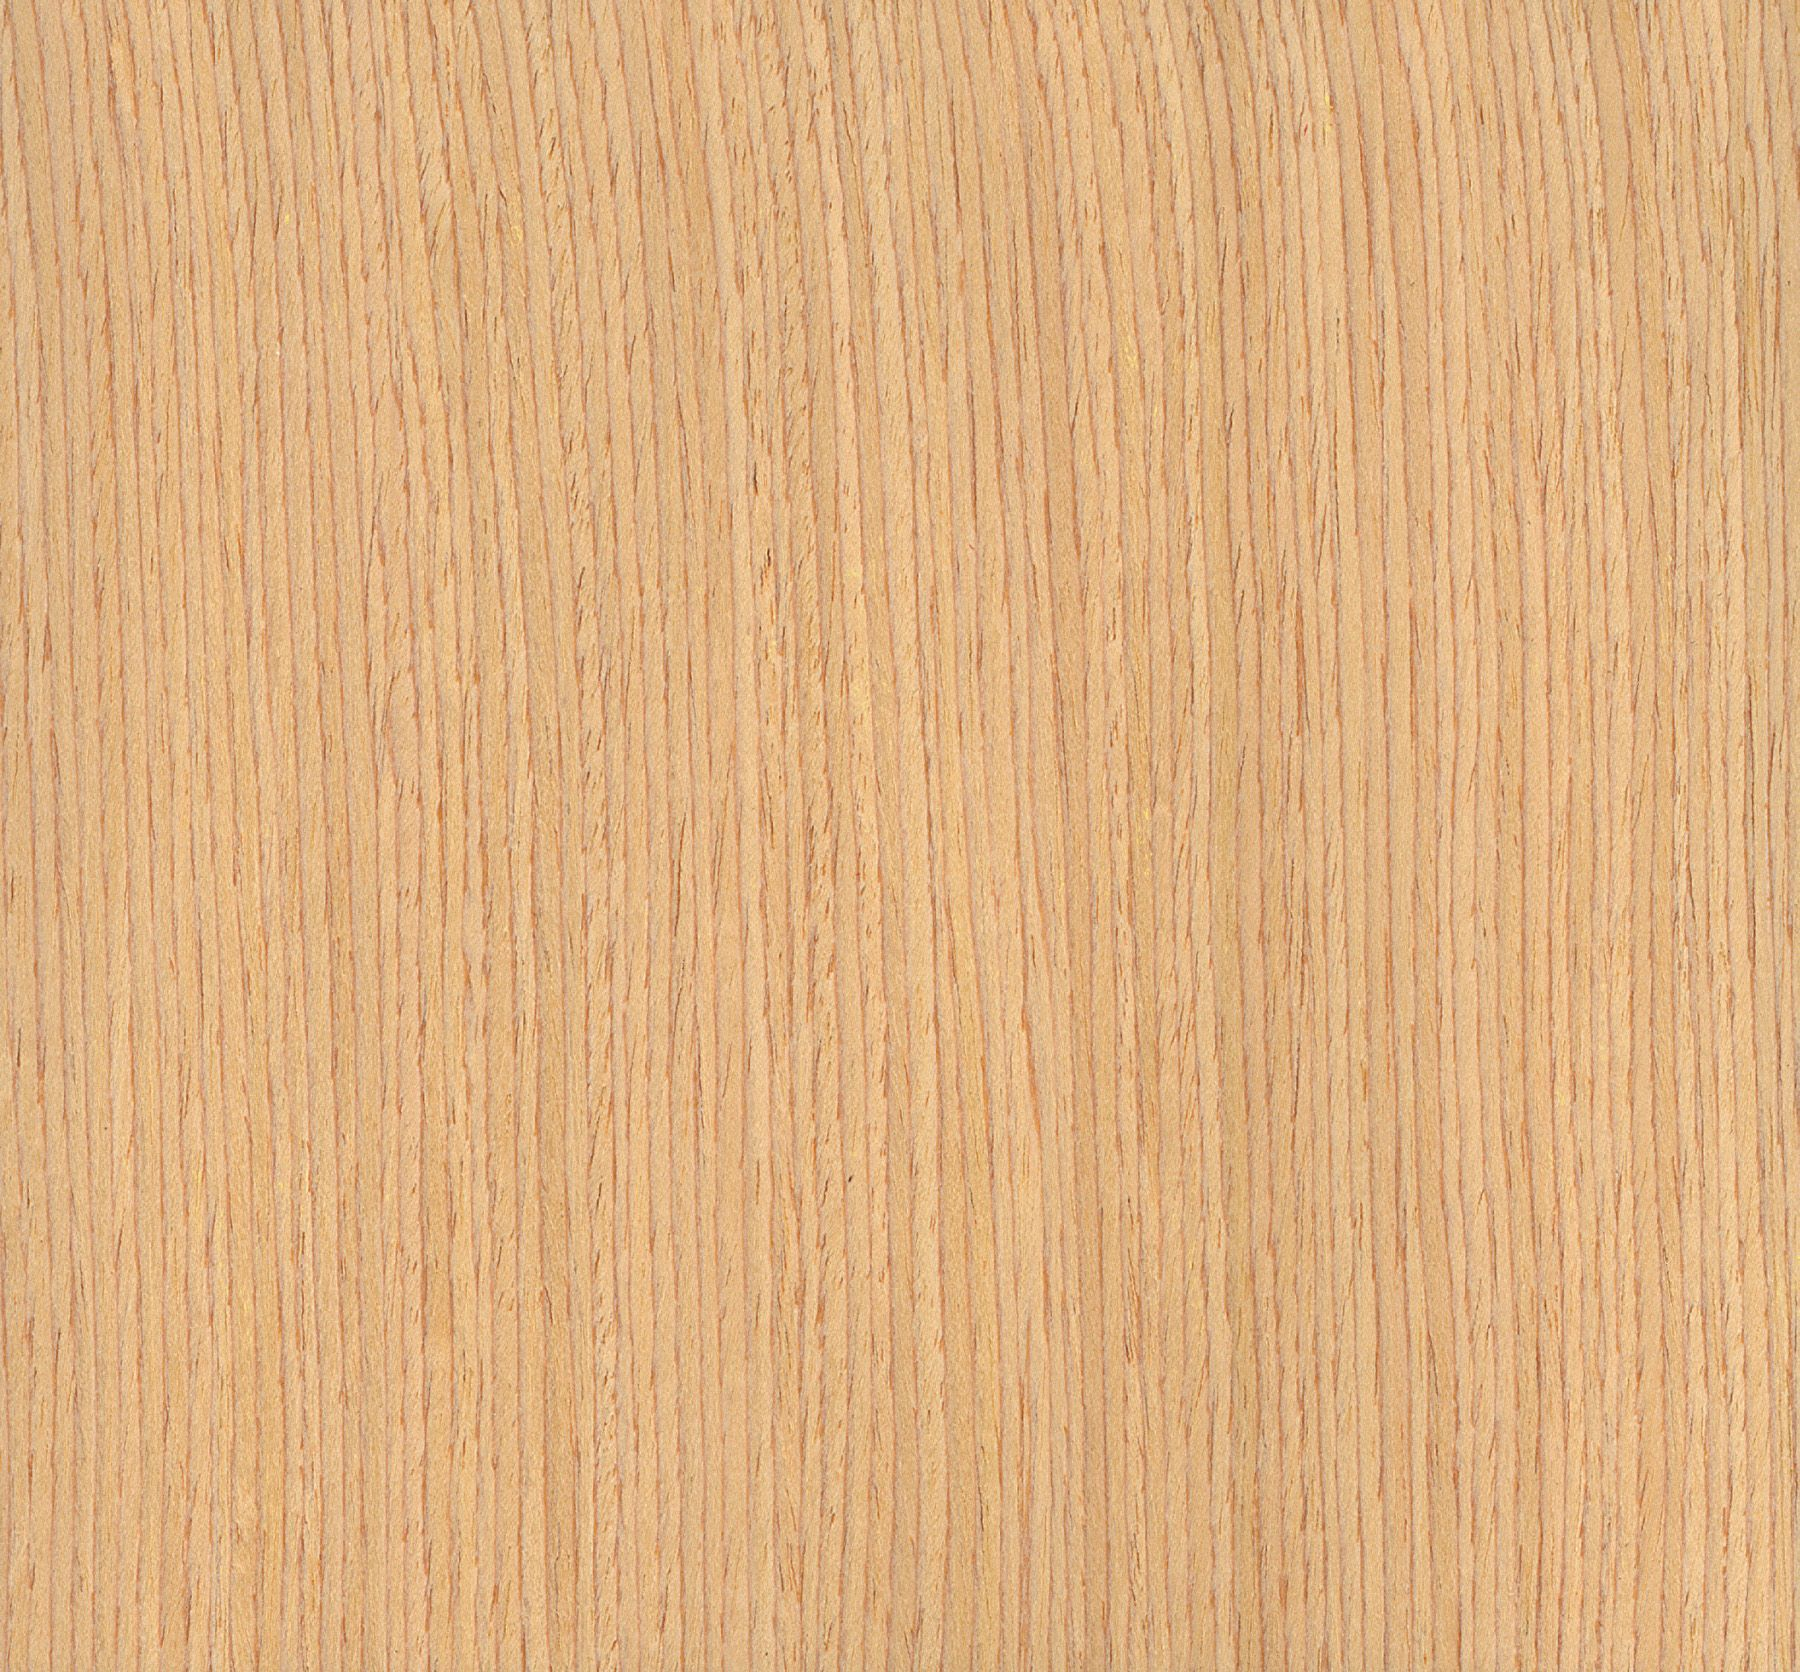 Wood Veneer Google Map Source Pinterest Wood